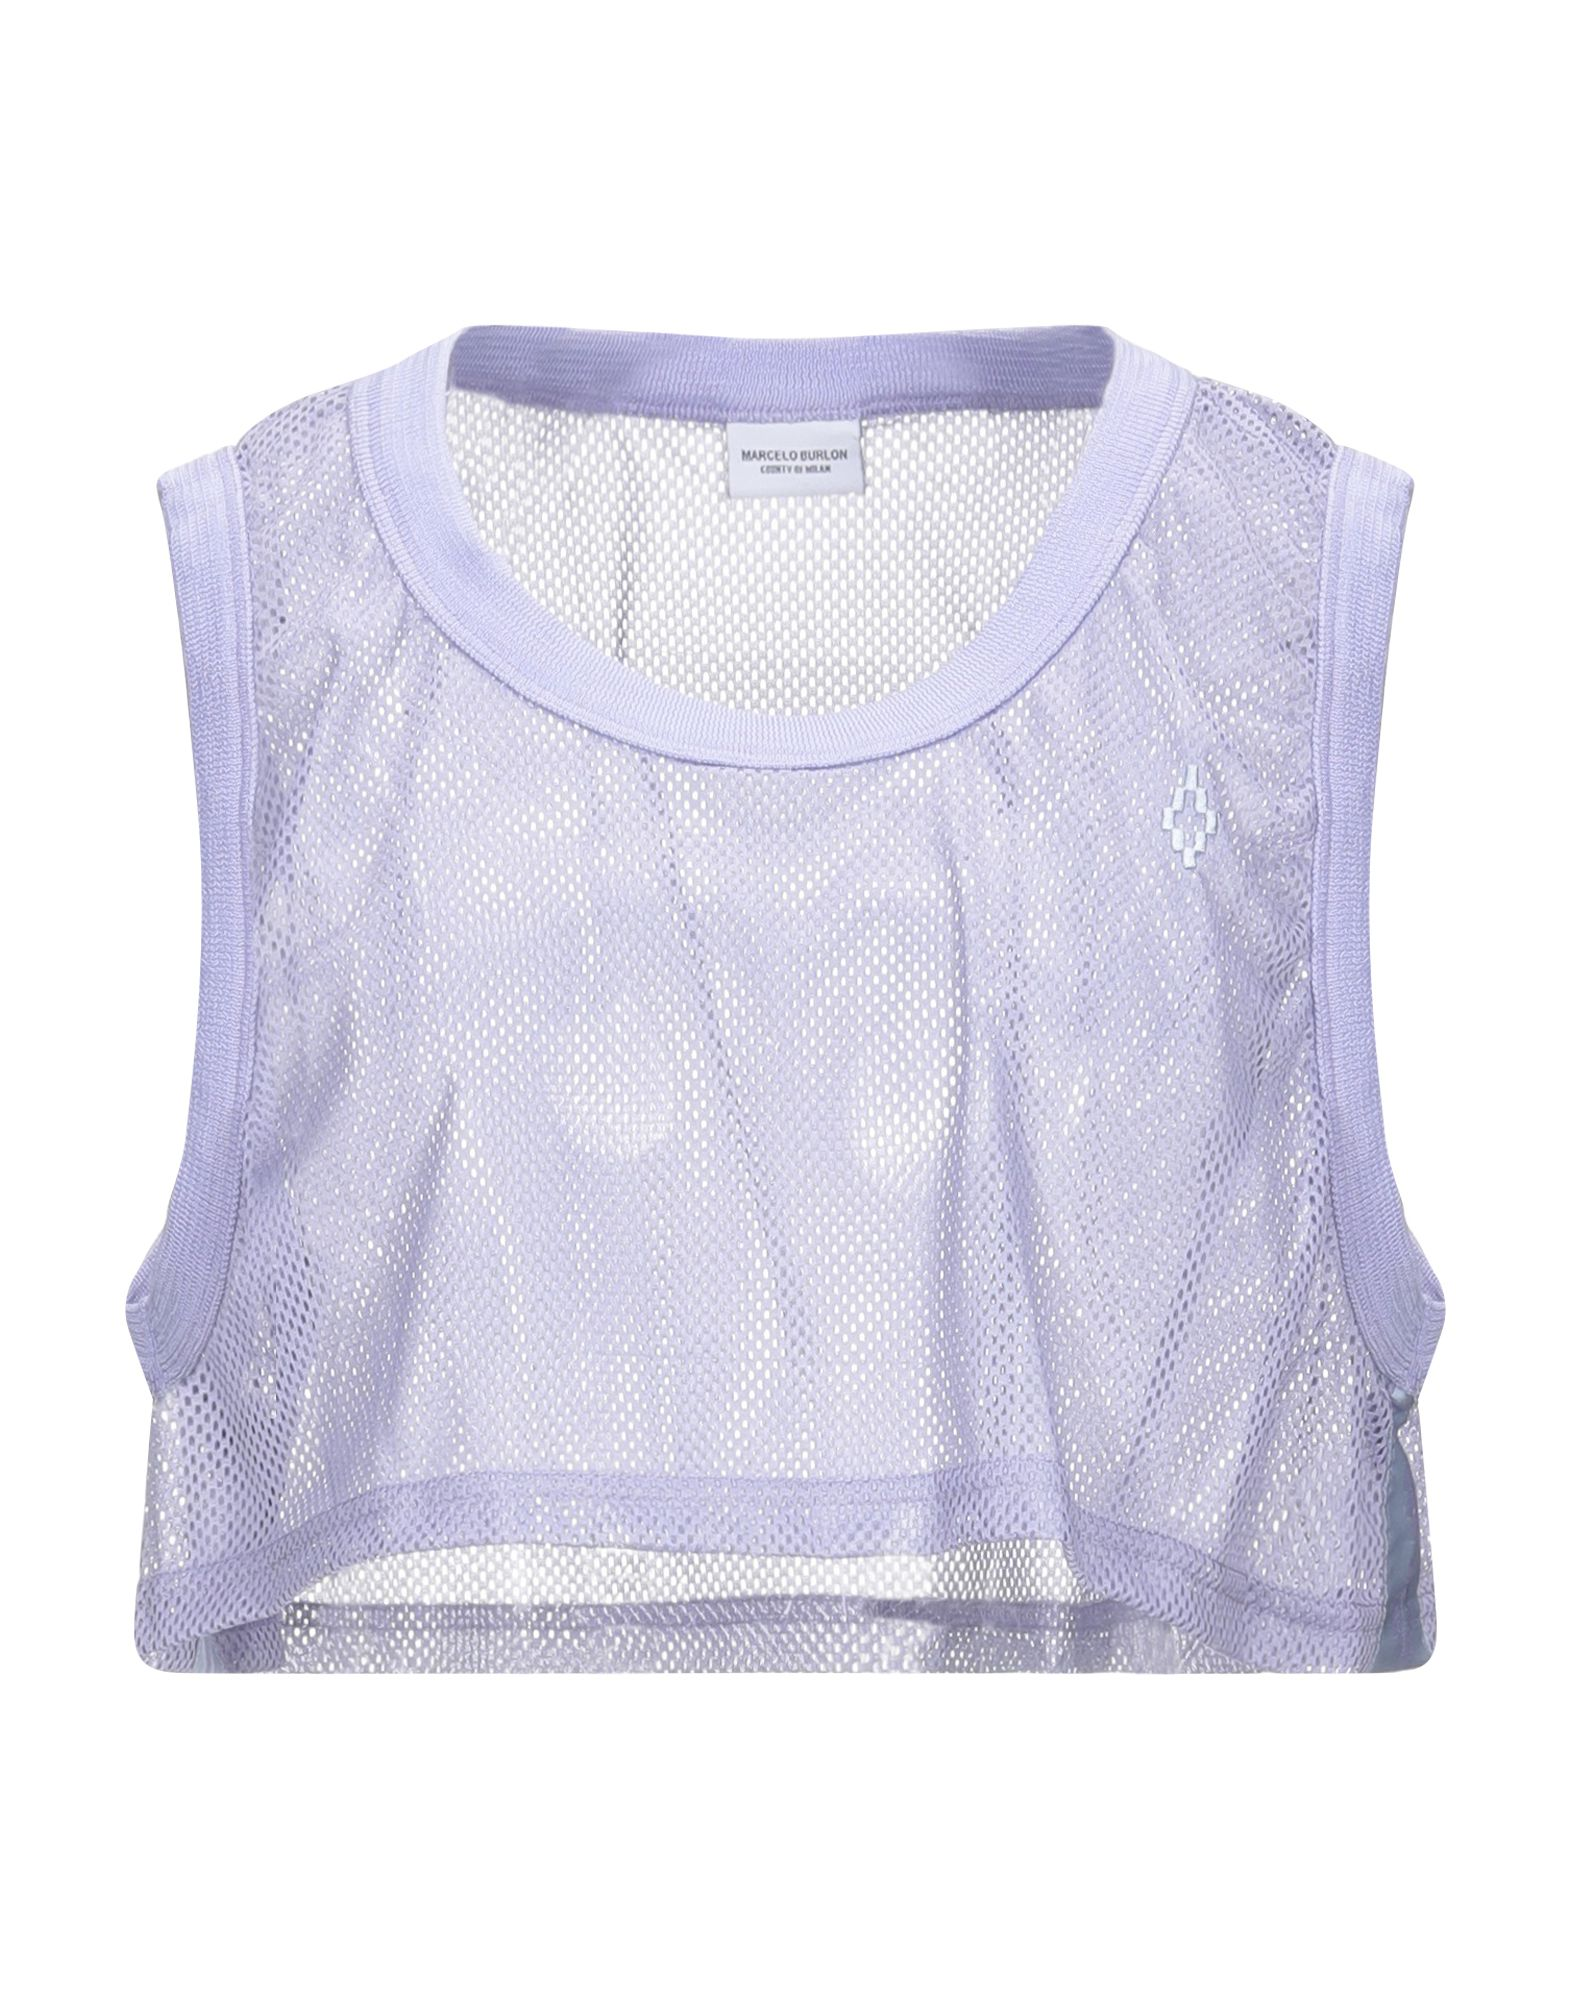 MARCELO BURLON Tops. techno fabric, logo, solid color, round collar, sleeveless, no pockets. 60% Polyamide, 40% Nylon